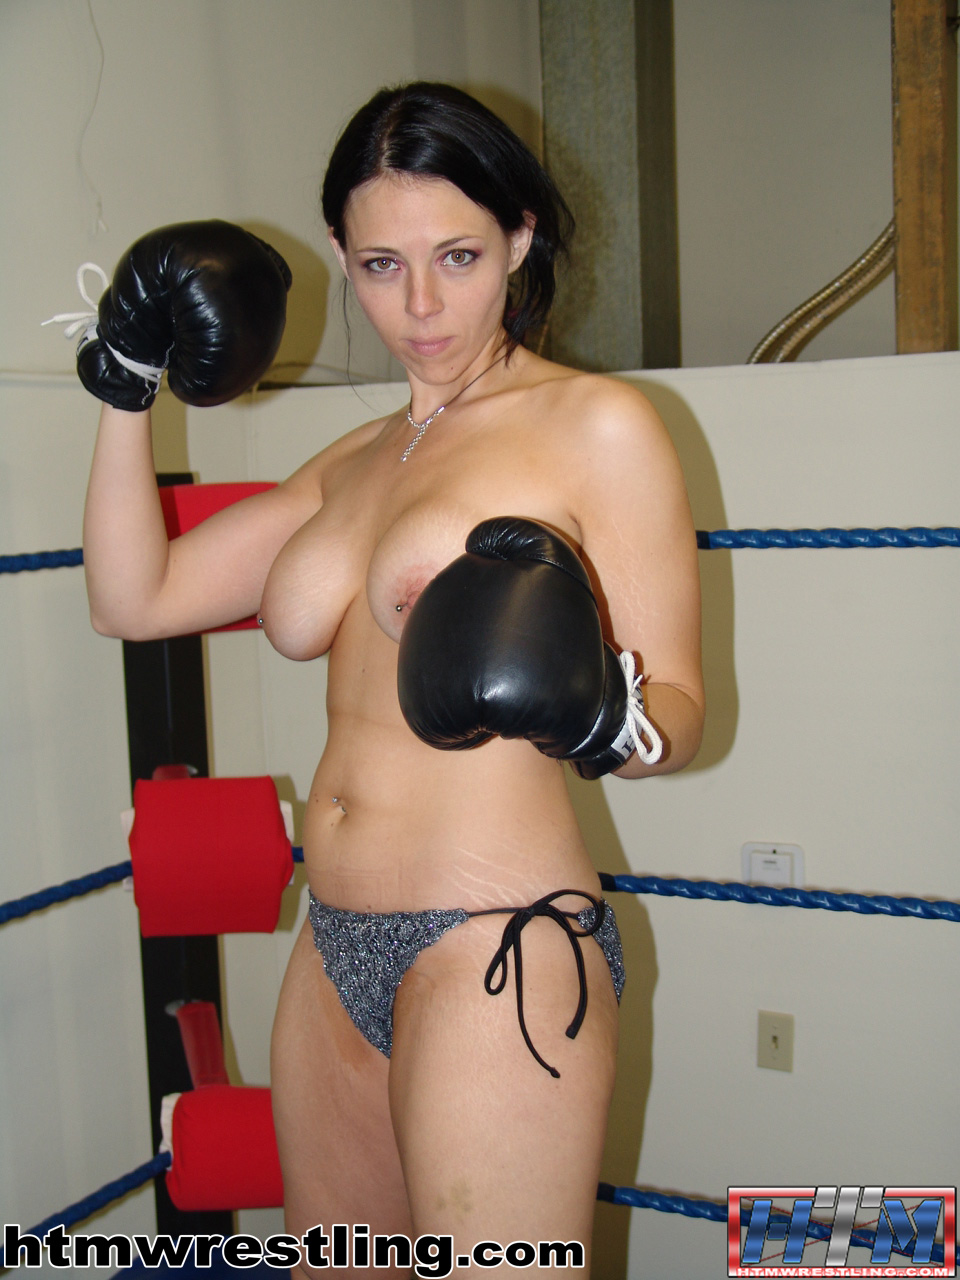 Topless boxing women, girl nude up close showingeverything